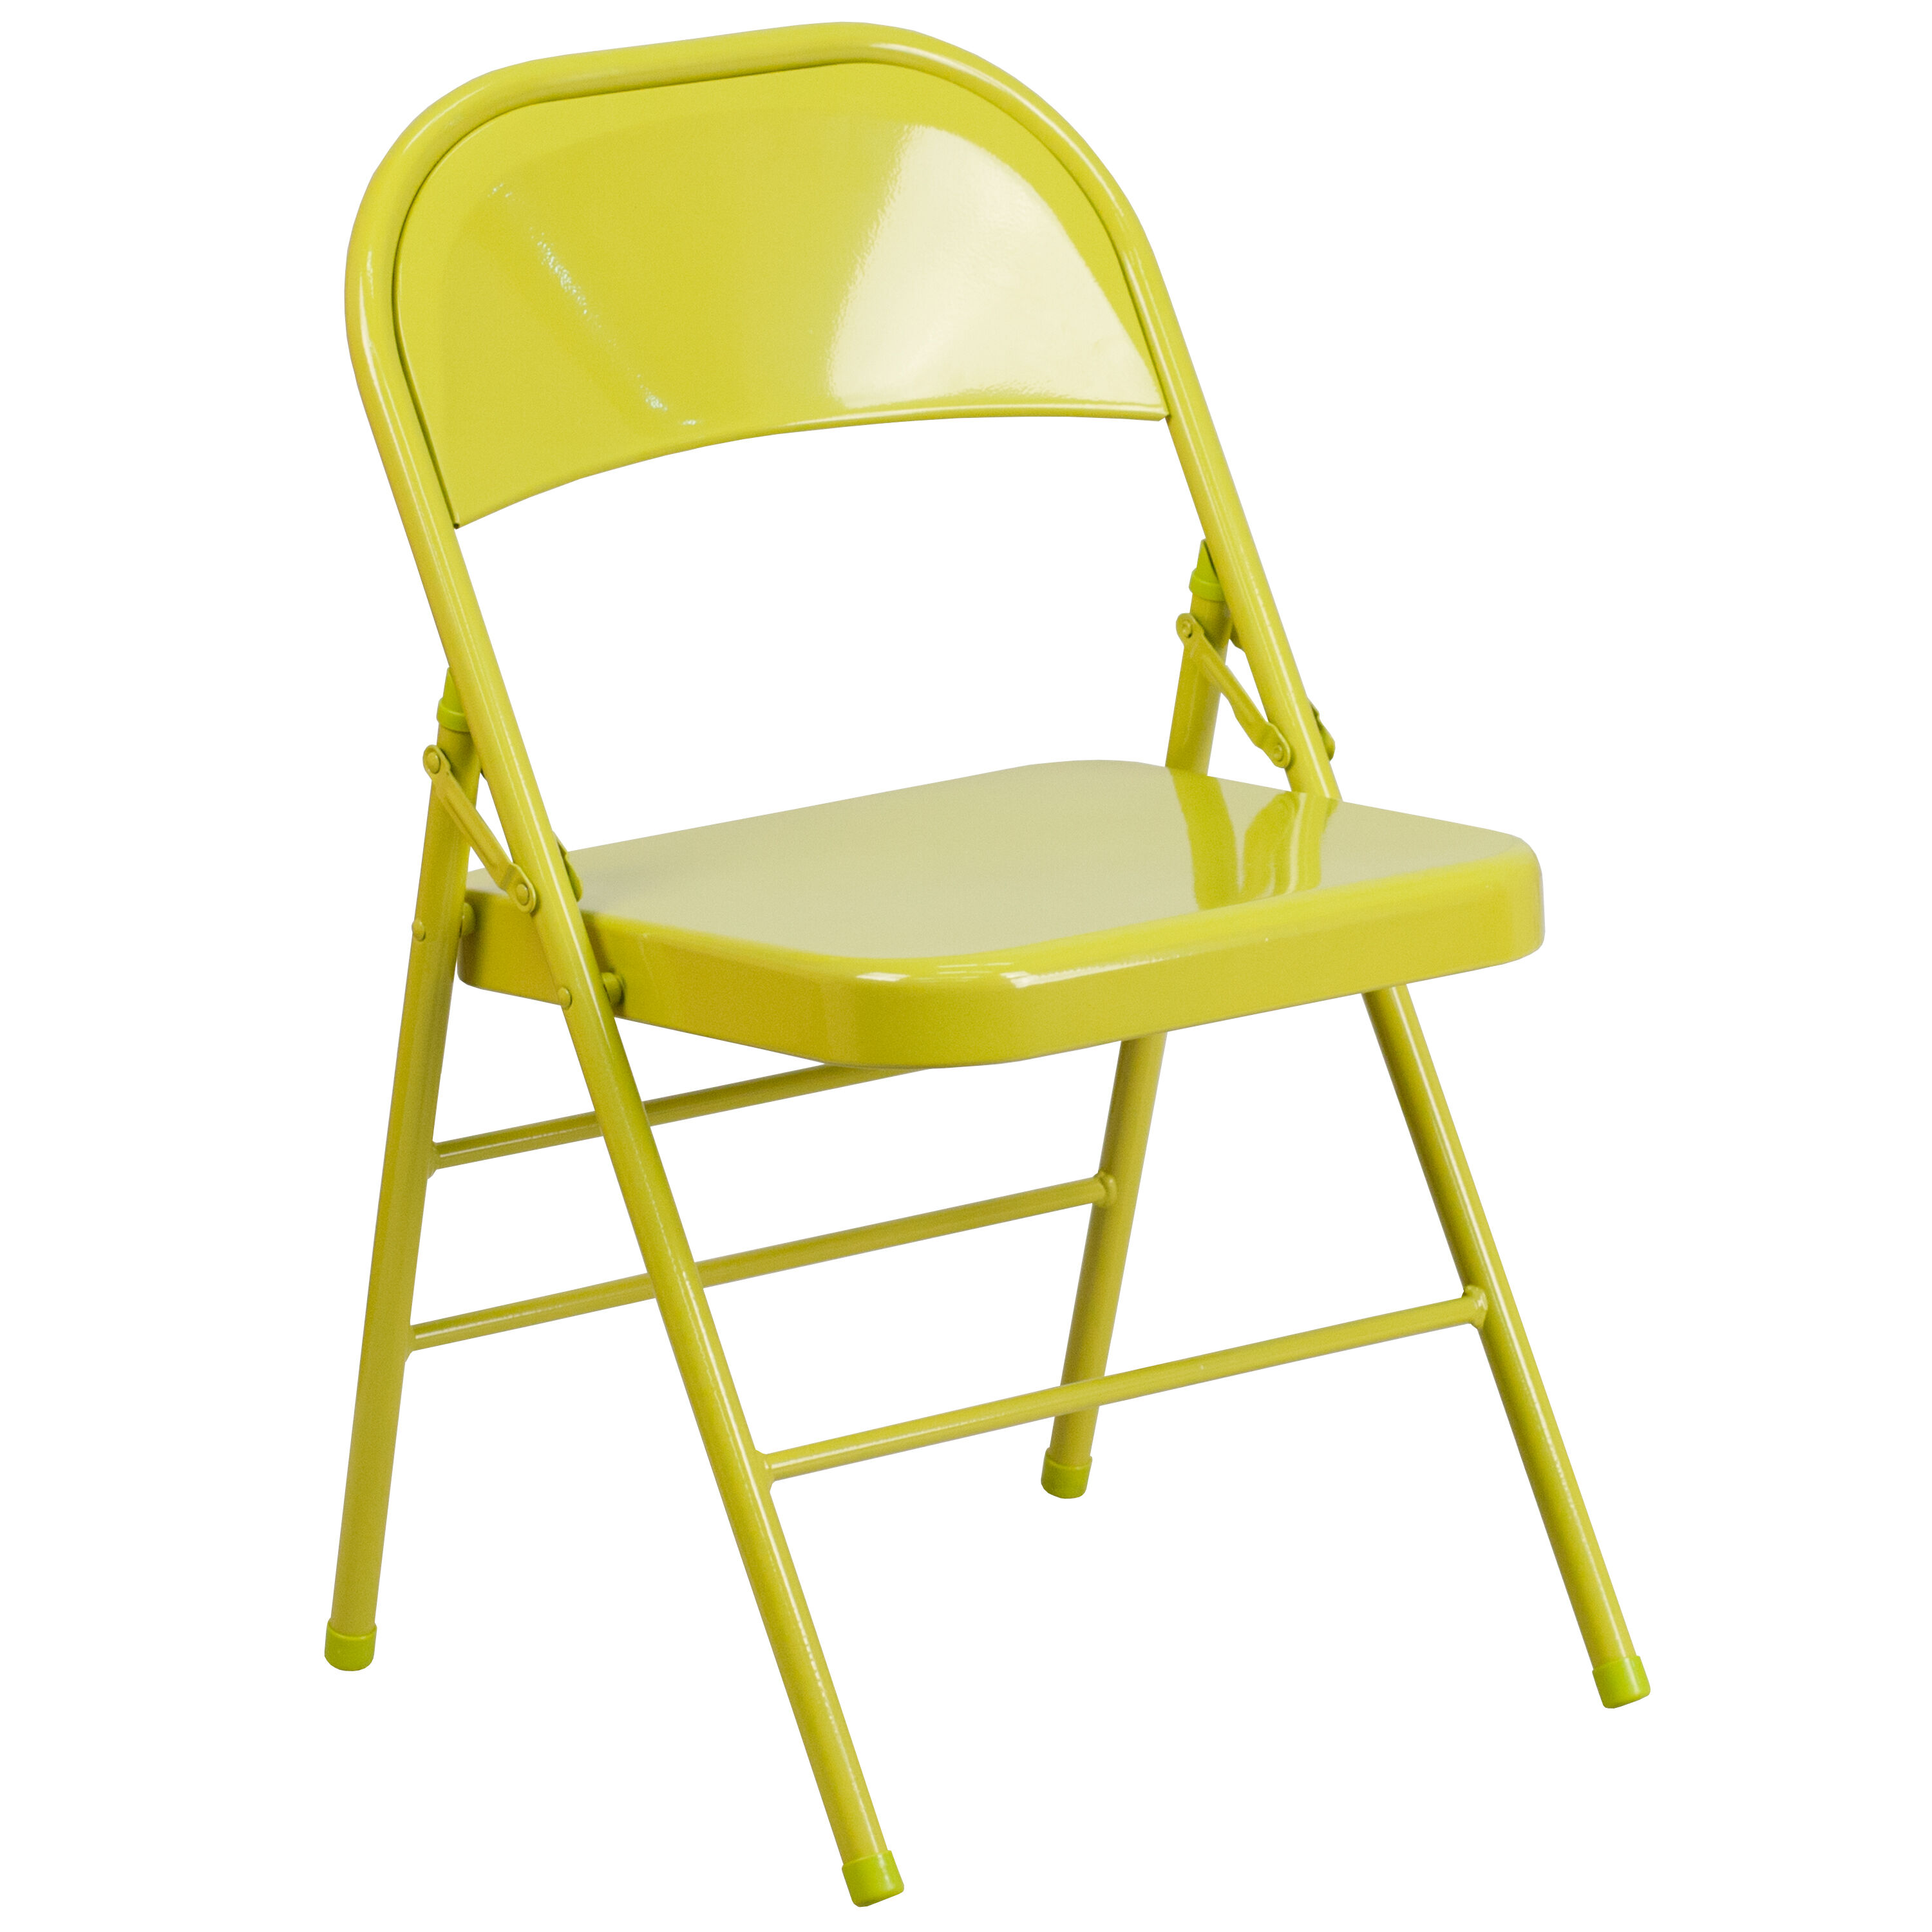 double seat folding chair best sleeper and a half twisted citron hf3 gg churchchairs4less com our hercules colorburst series triple braced hinged metal is on